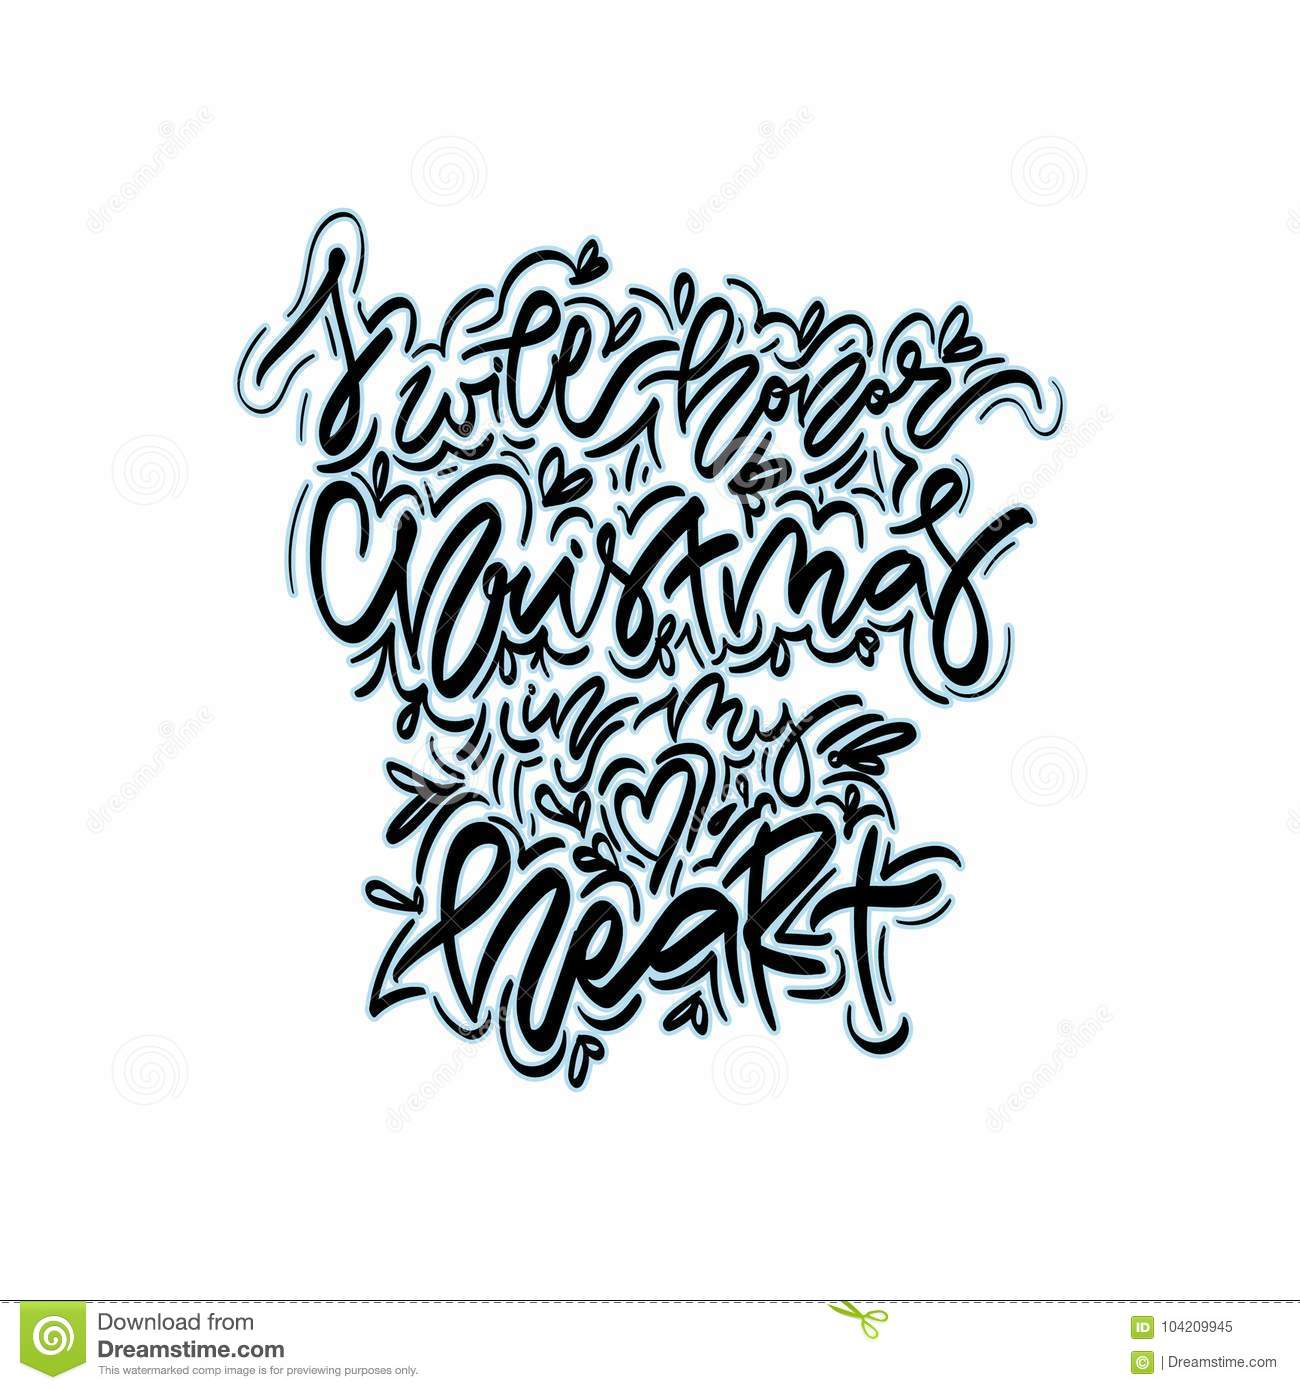 I Will Honor Christmas In My Heart. Stock Vector - Illustration of ...